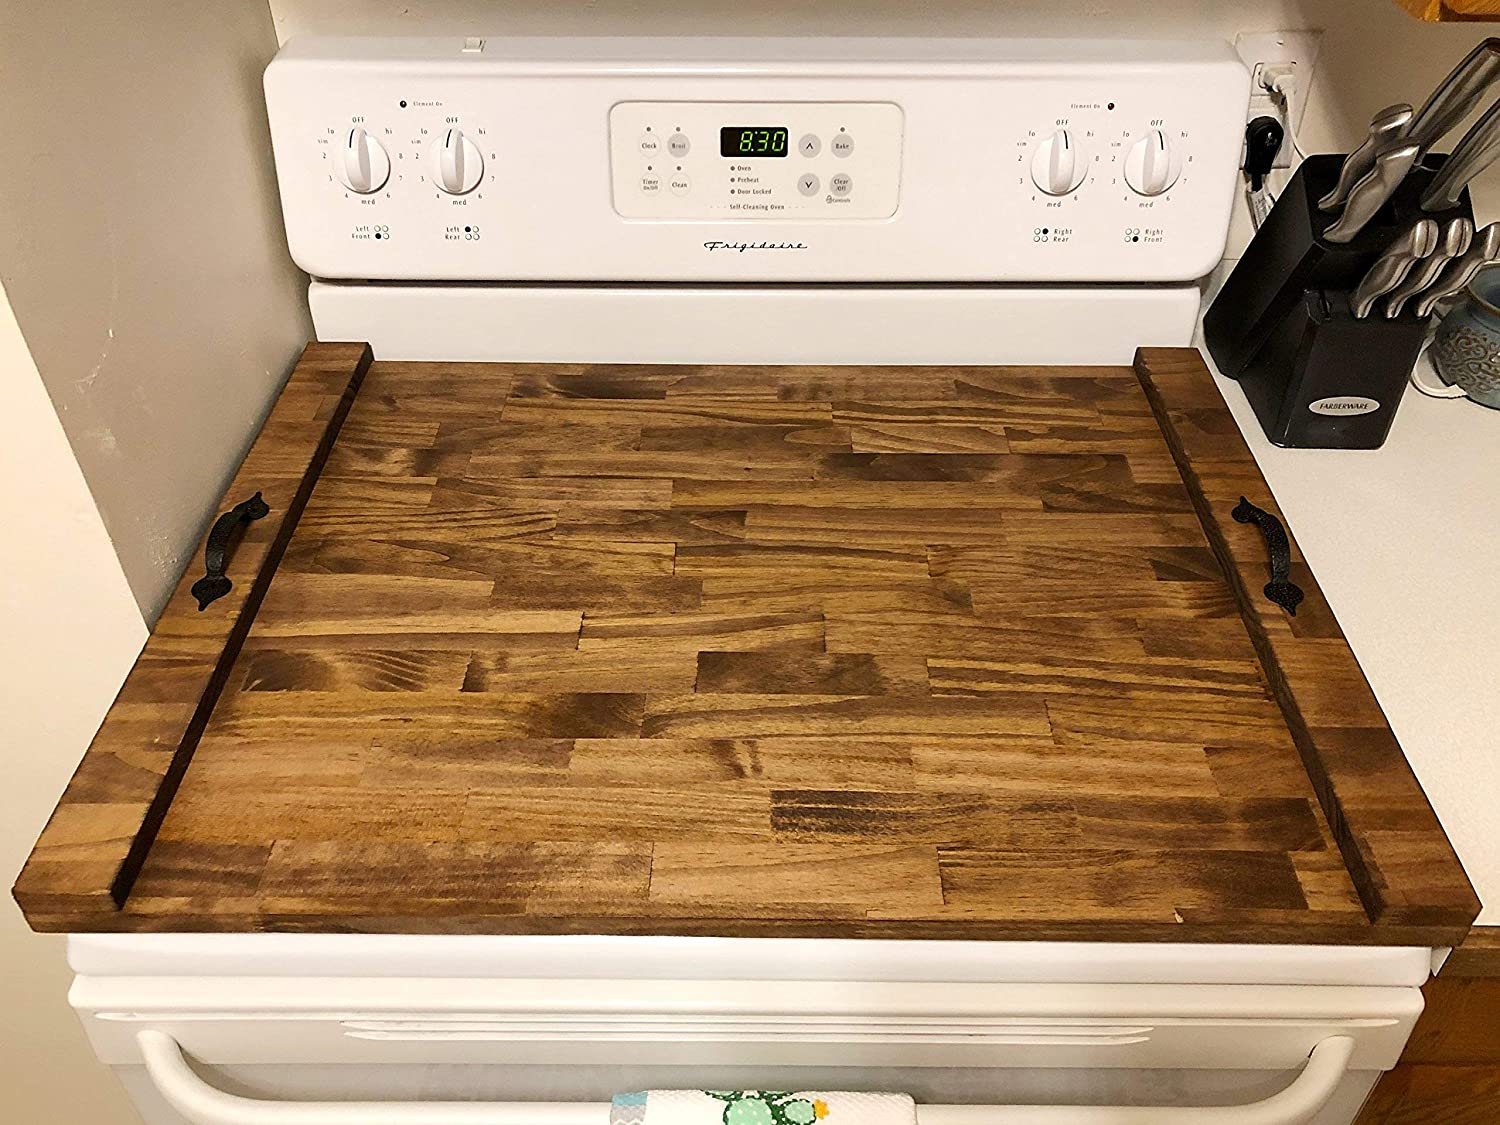 Rustic Stove Top Cover, Wooden Tray For Stove, Stove Top Tray, Stove Tray, Decorative Tray, Cook Top